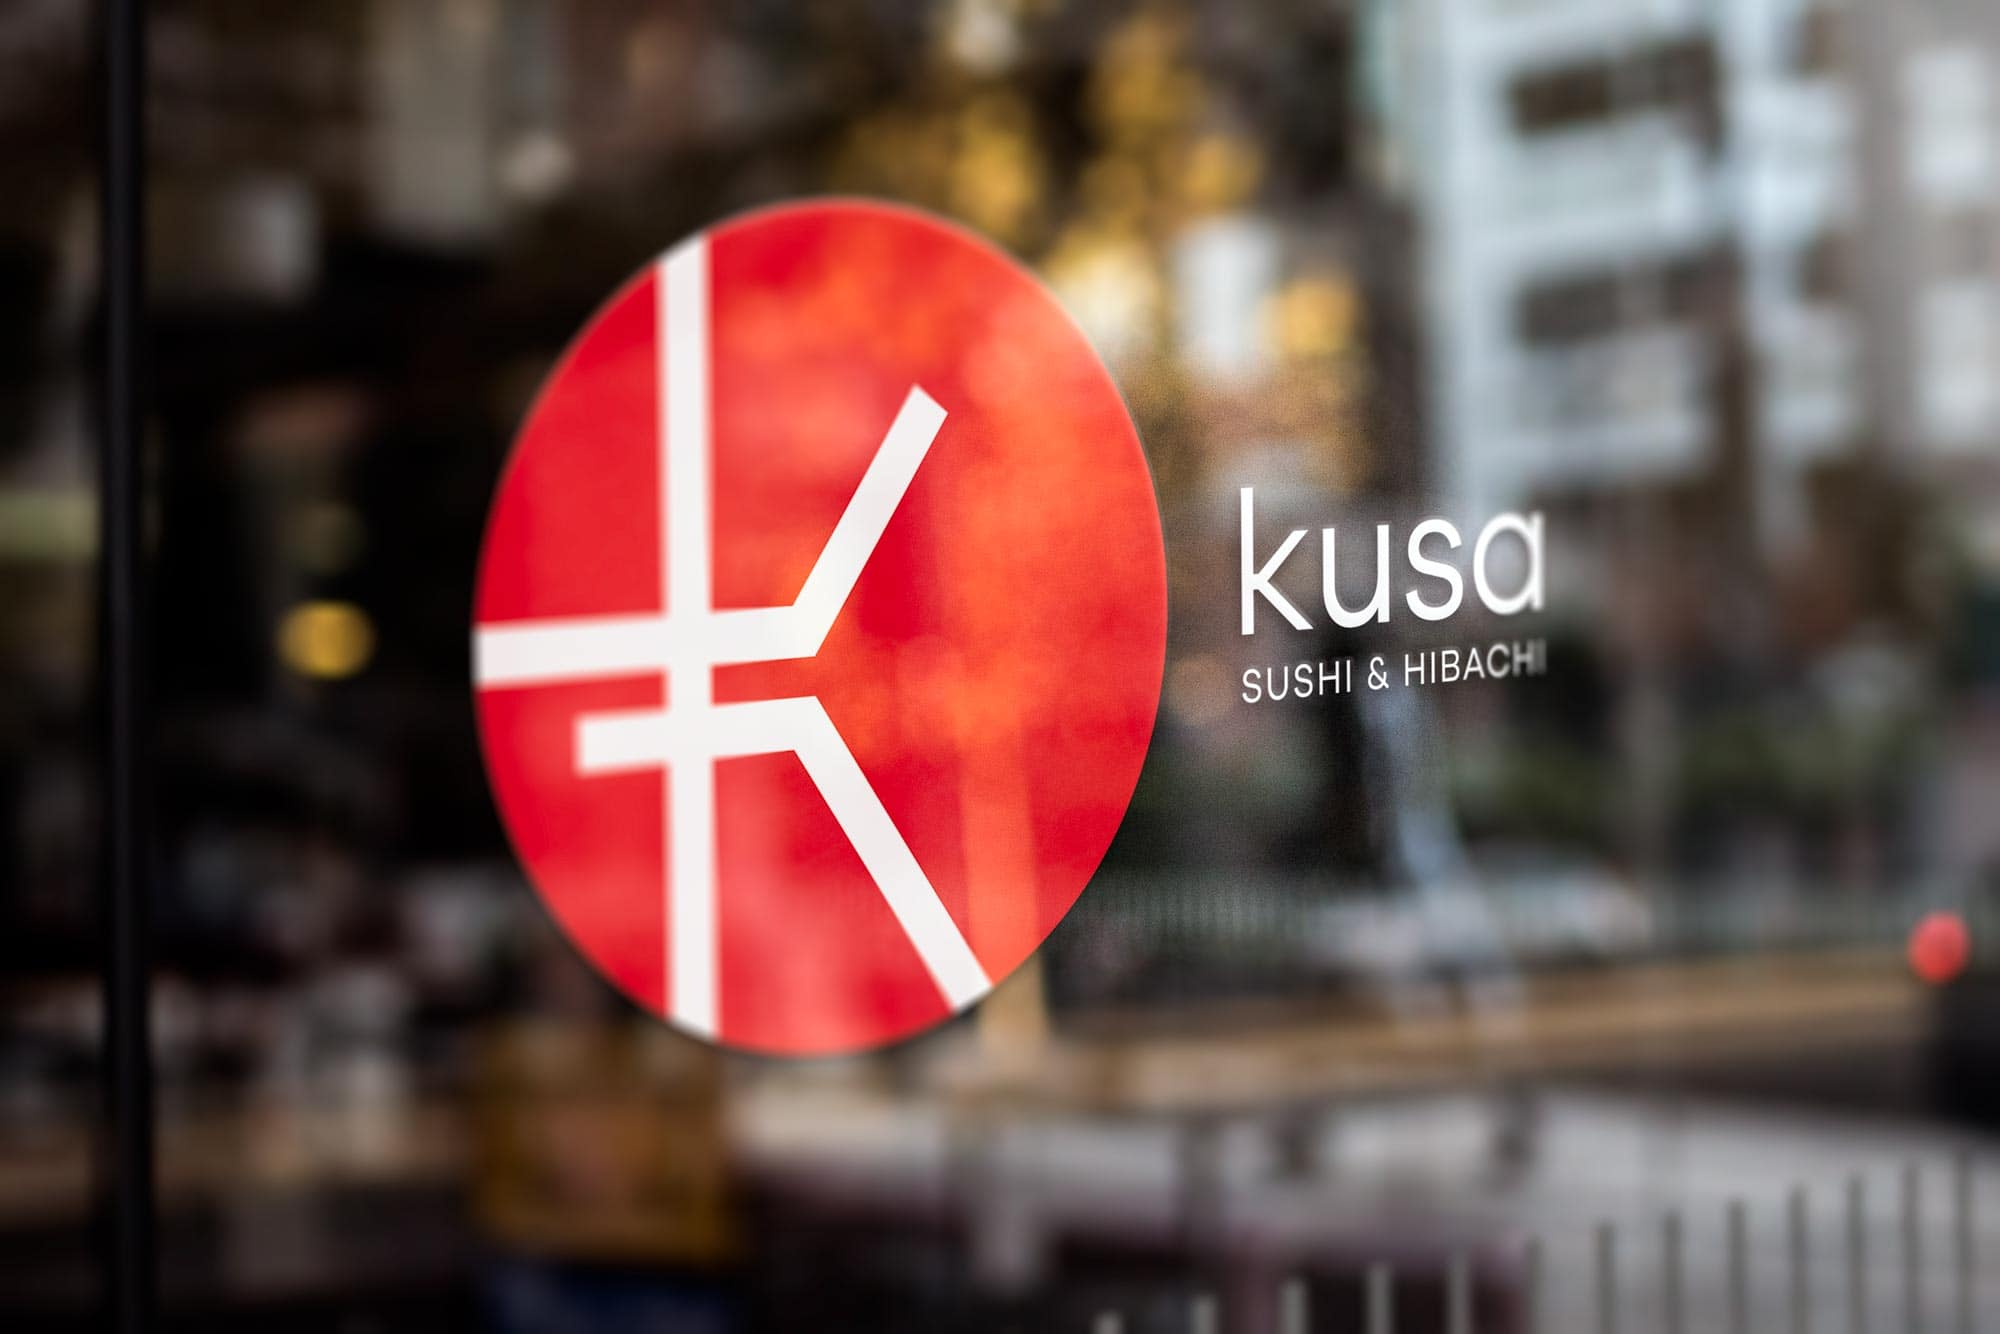 kusa window signage design